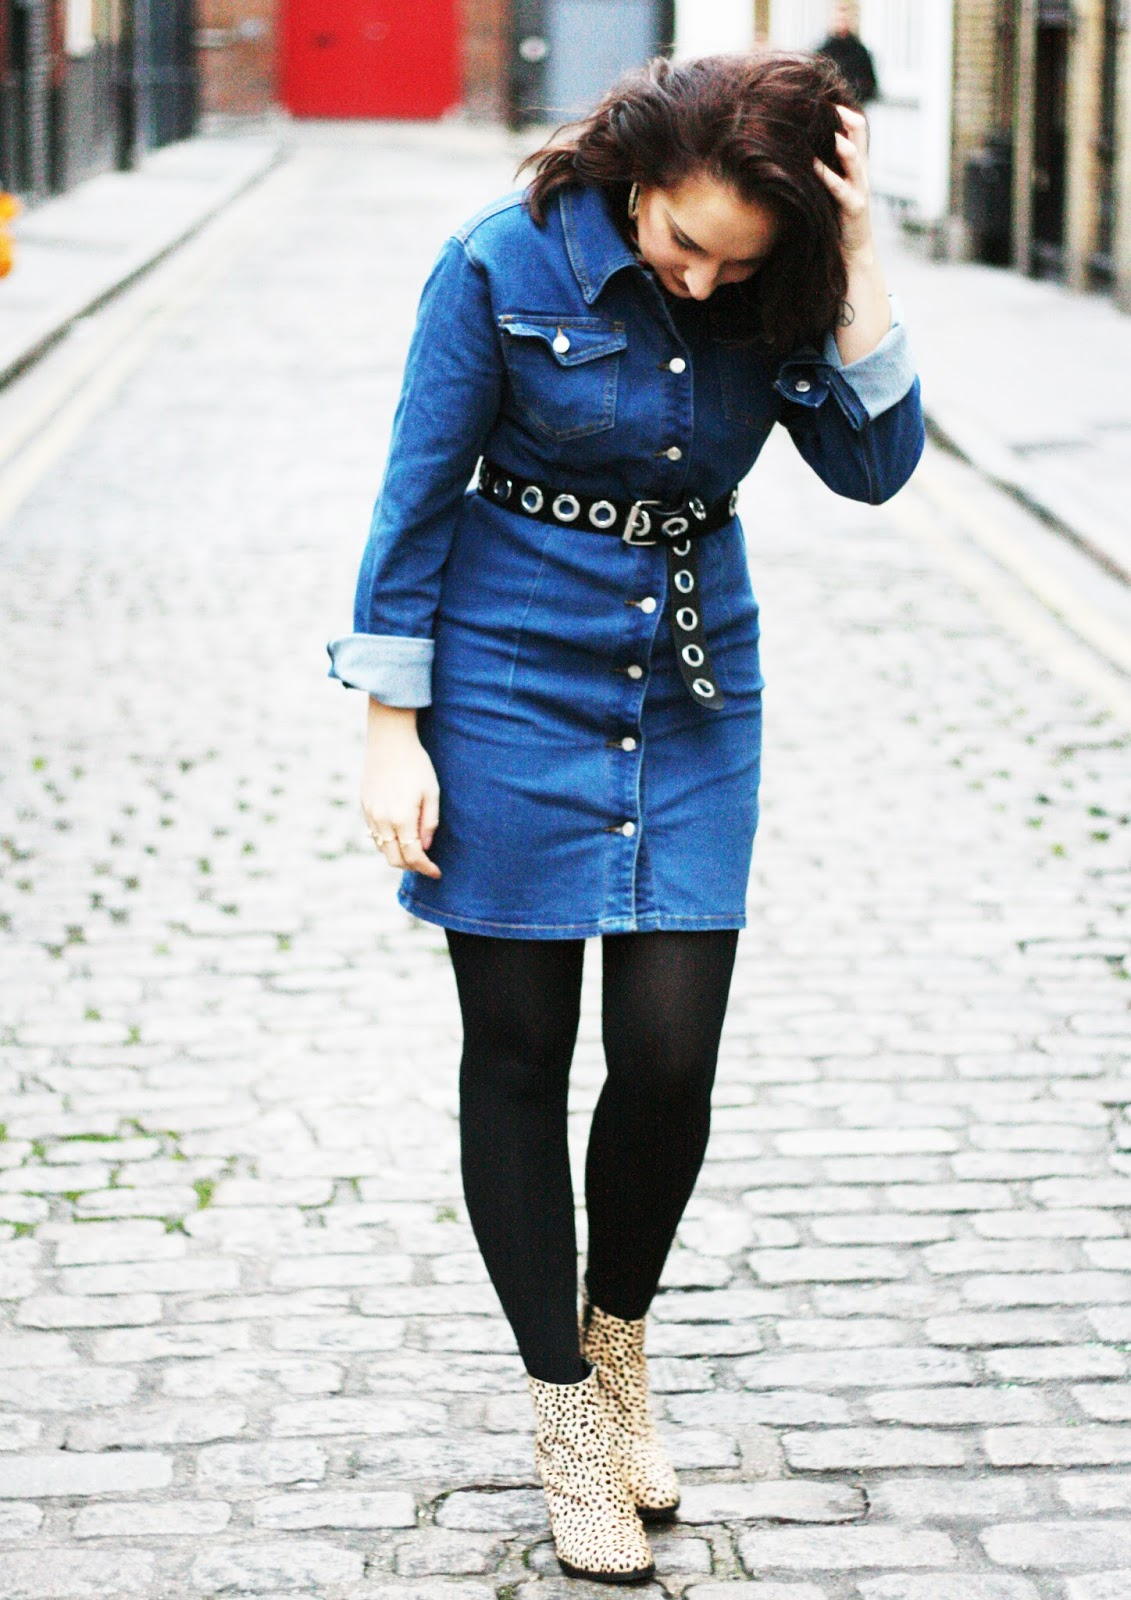 Boohoo denim dress